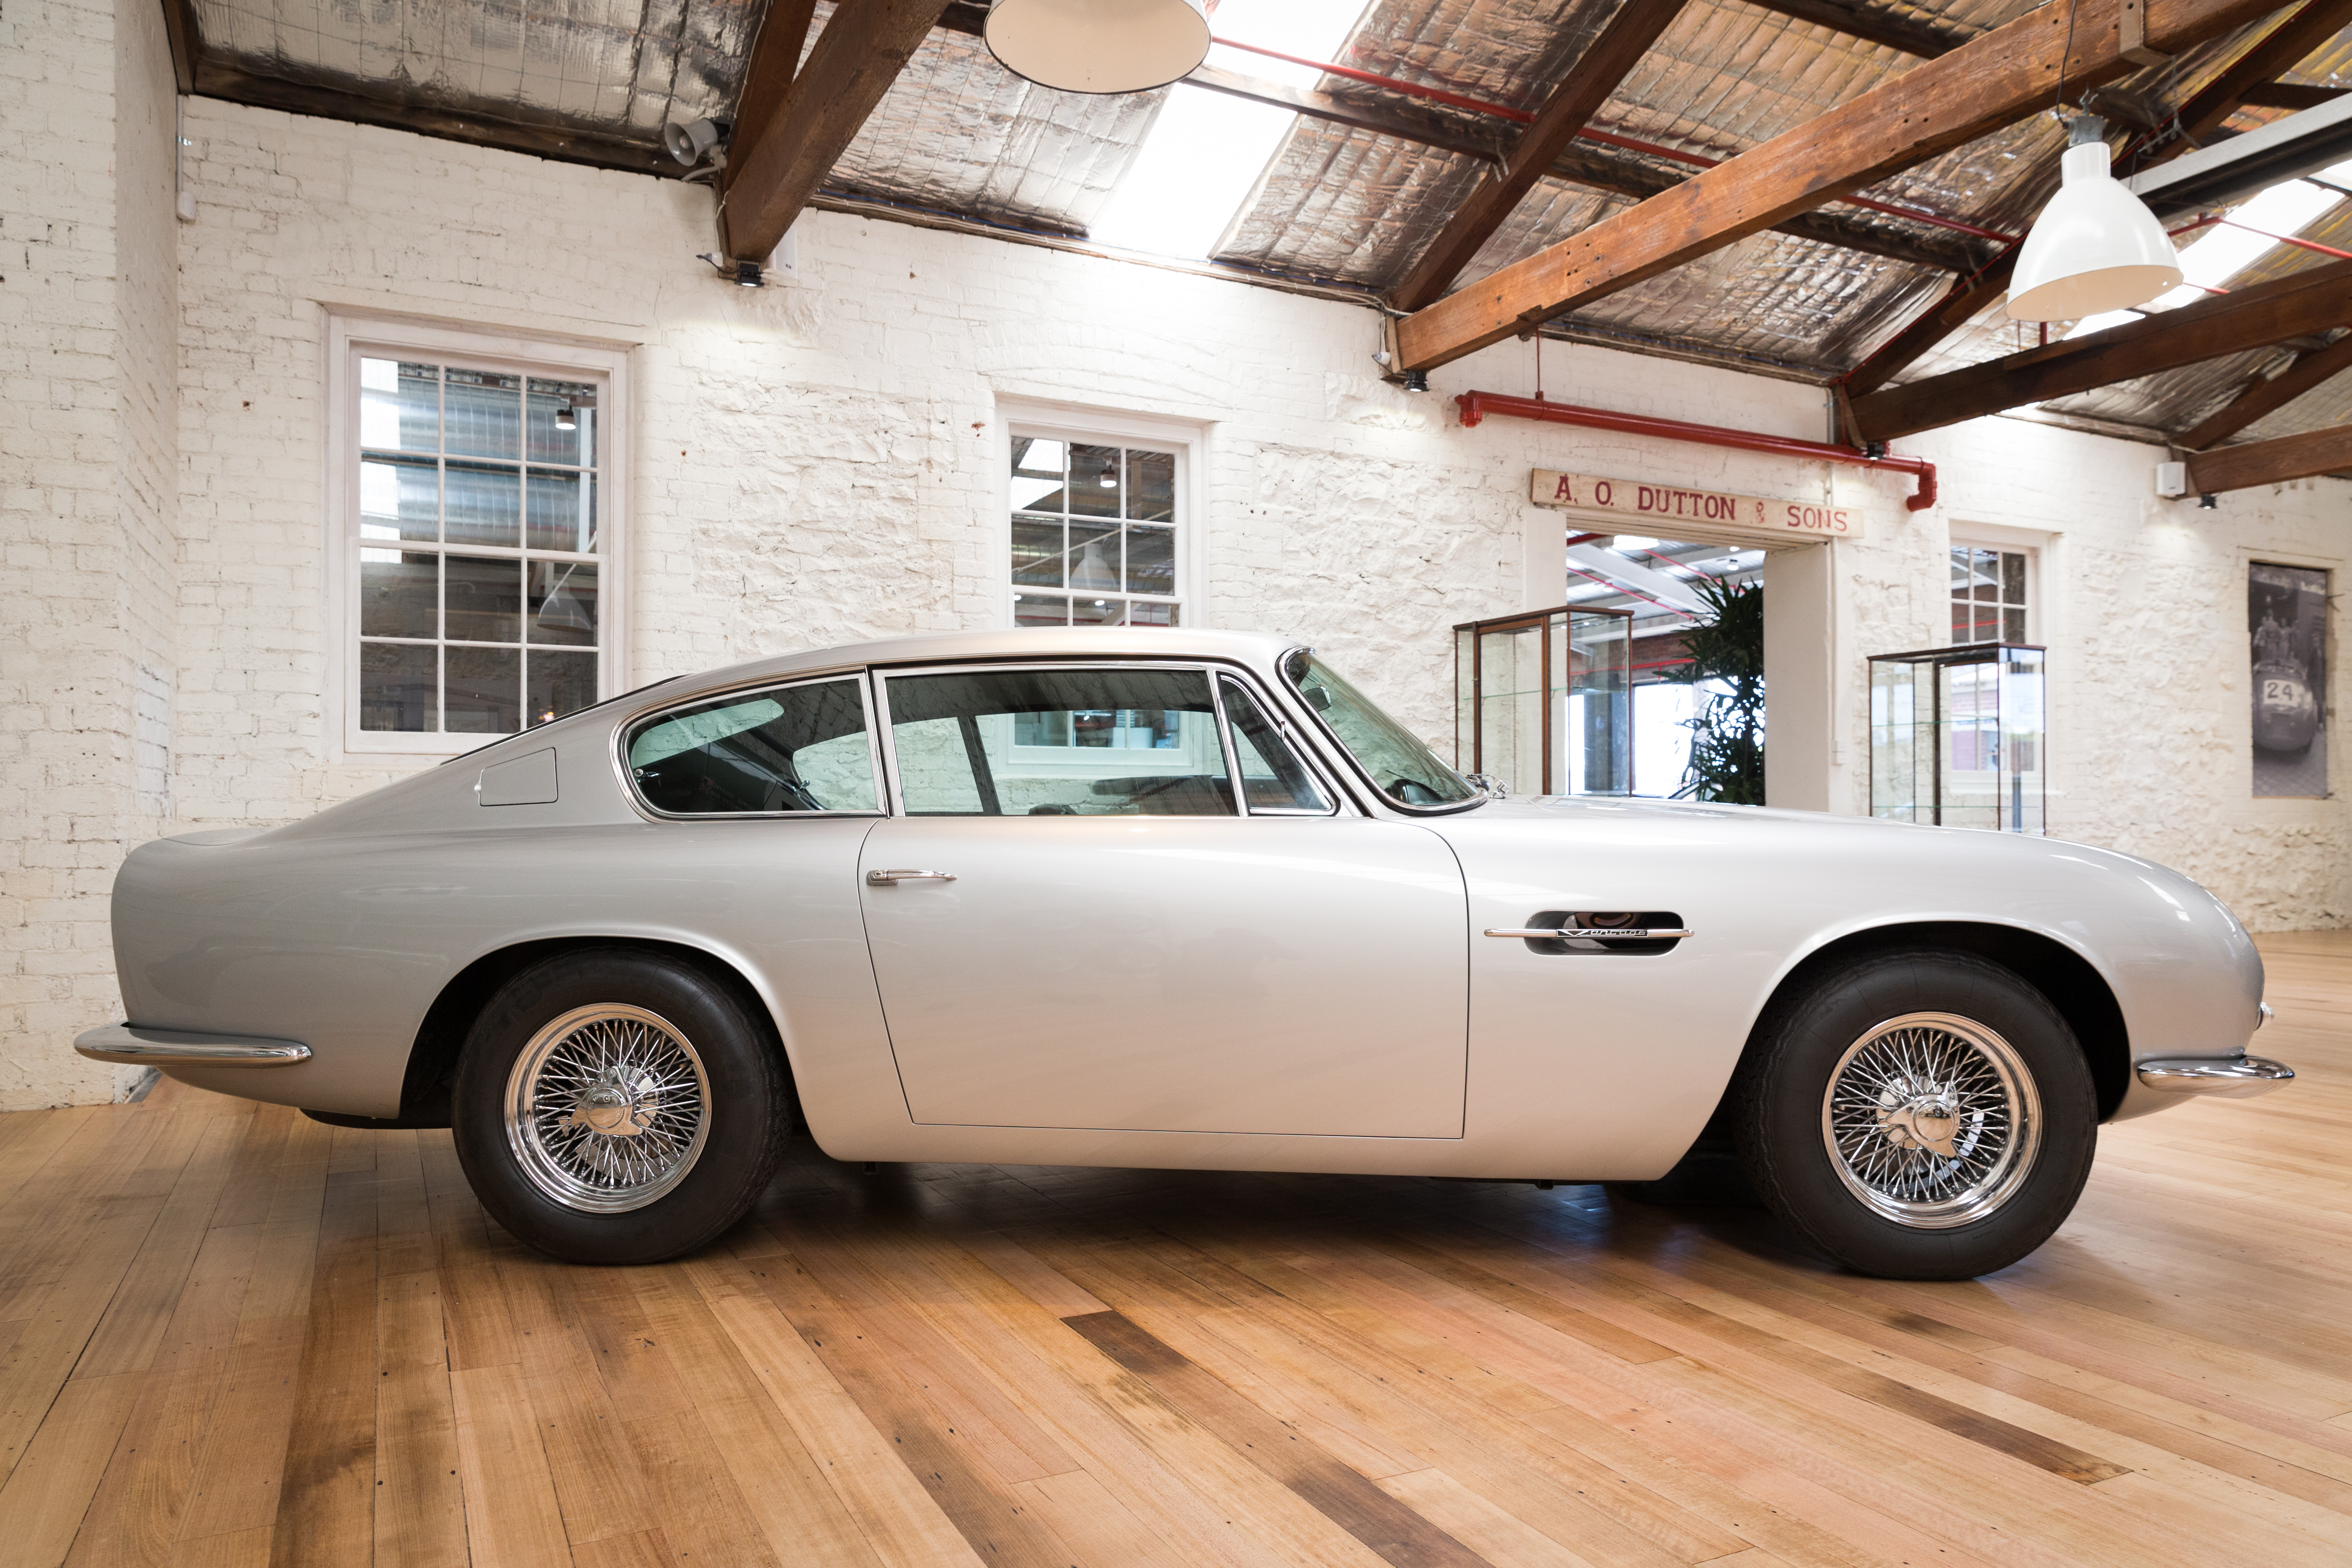 1970 Aston Martin DB6 MK2- sold in Australia